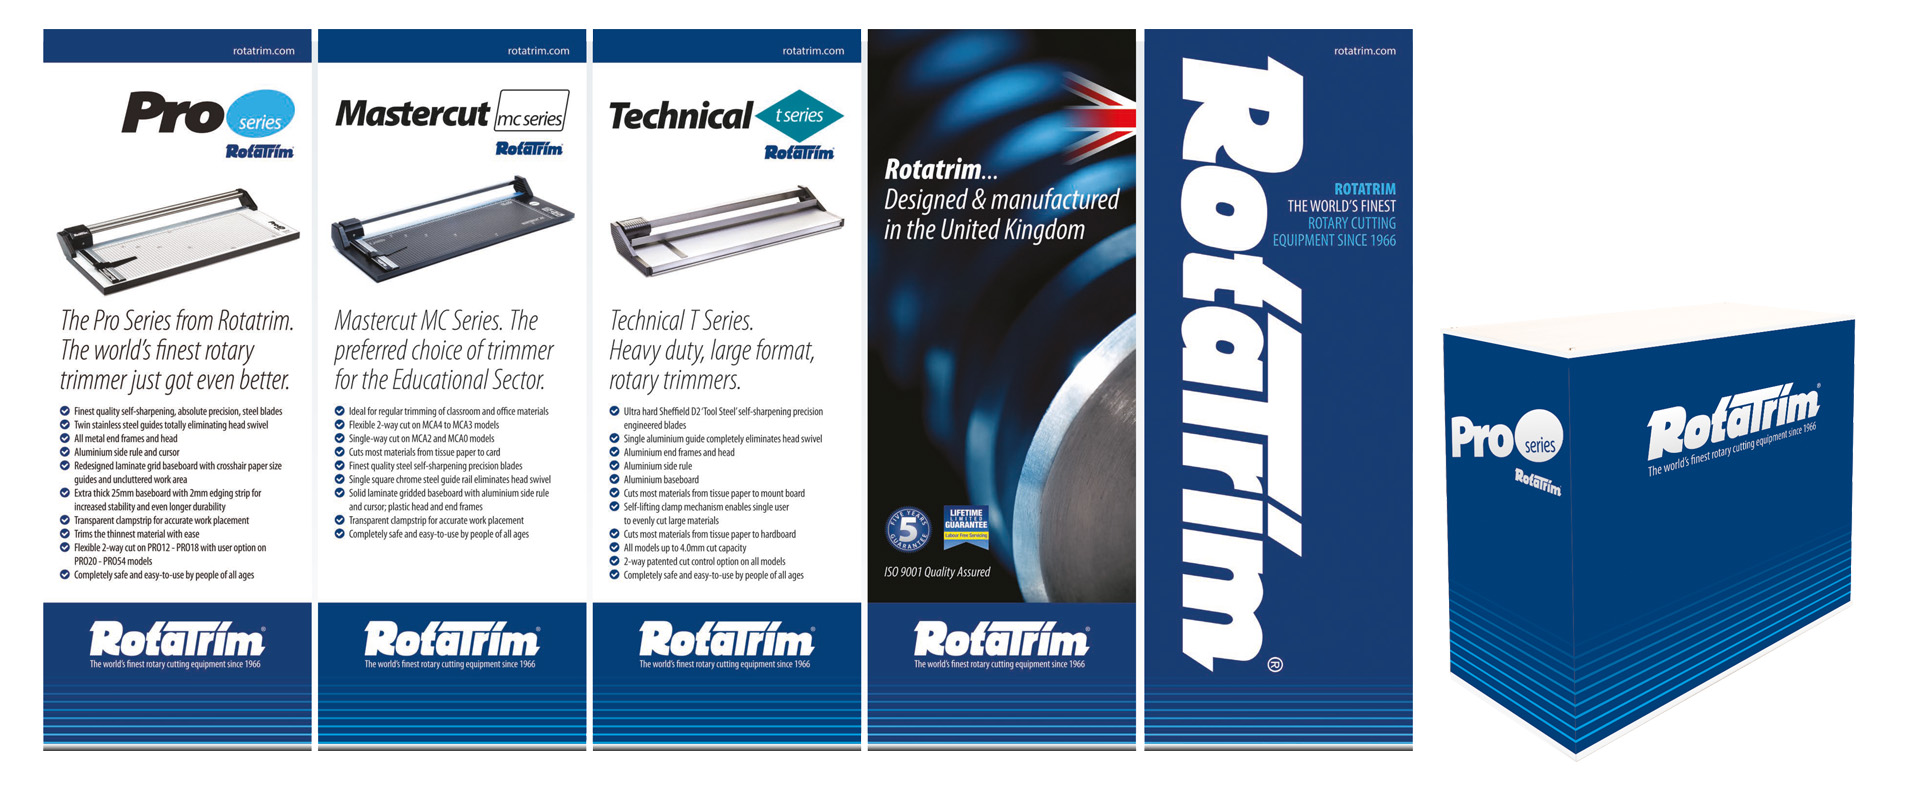 Rotatrim Pro Series Product Development